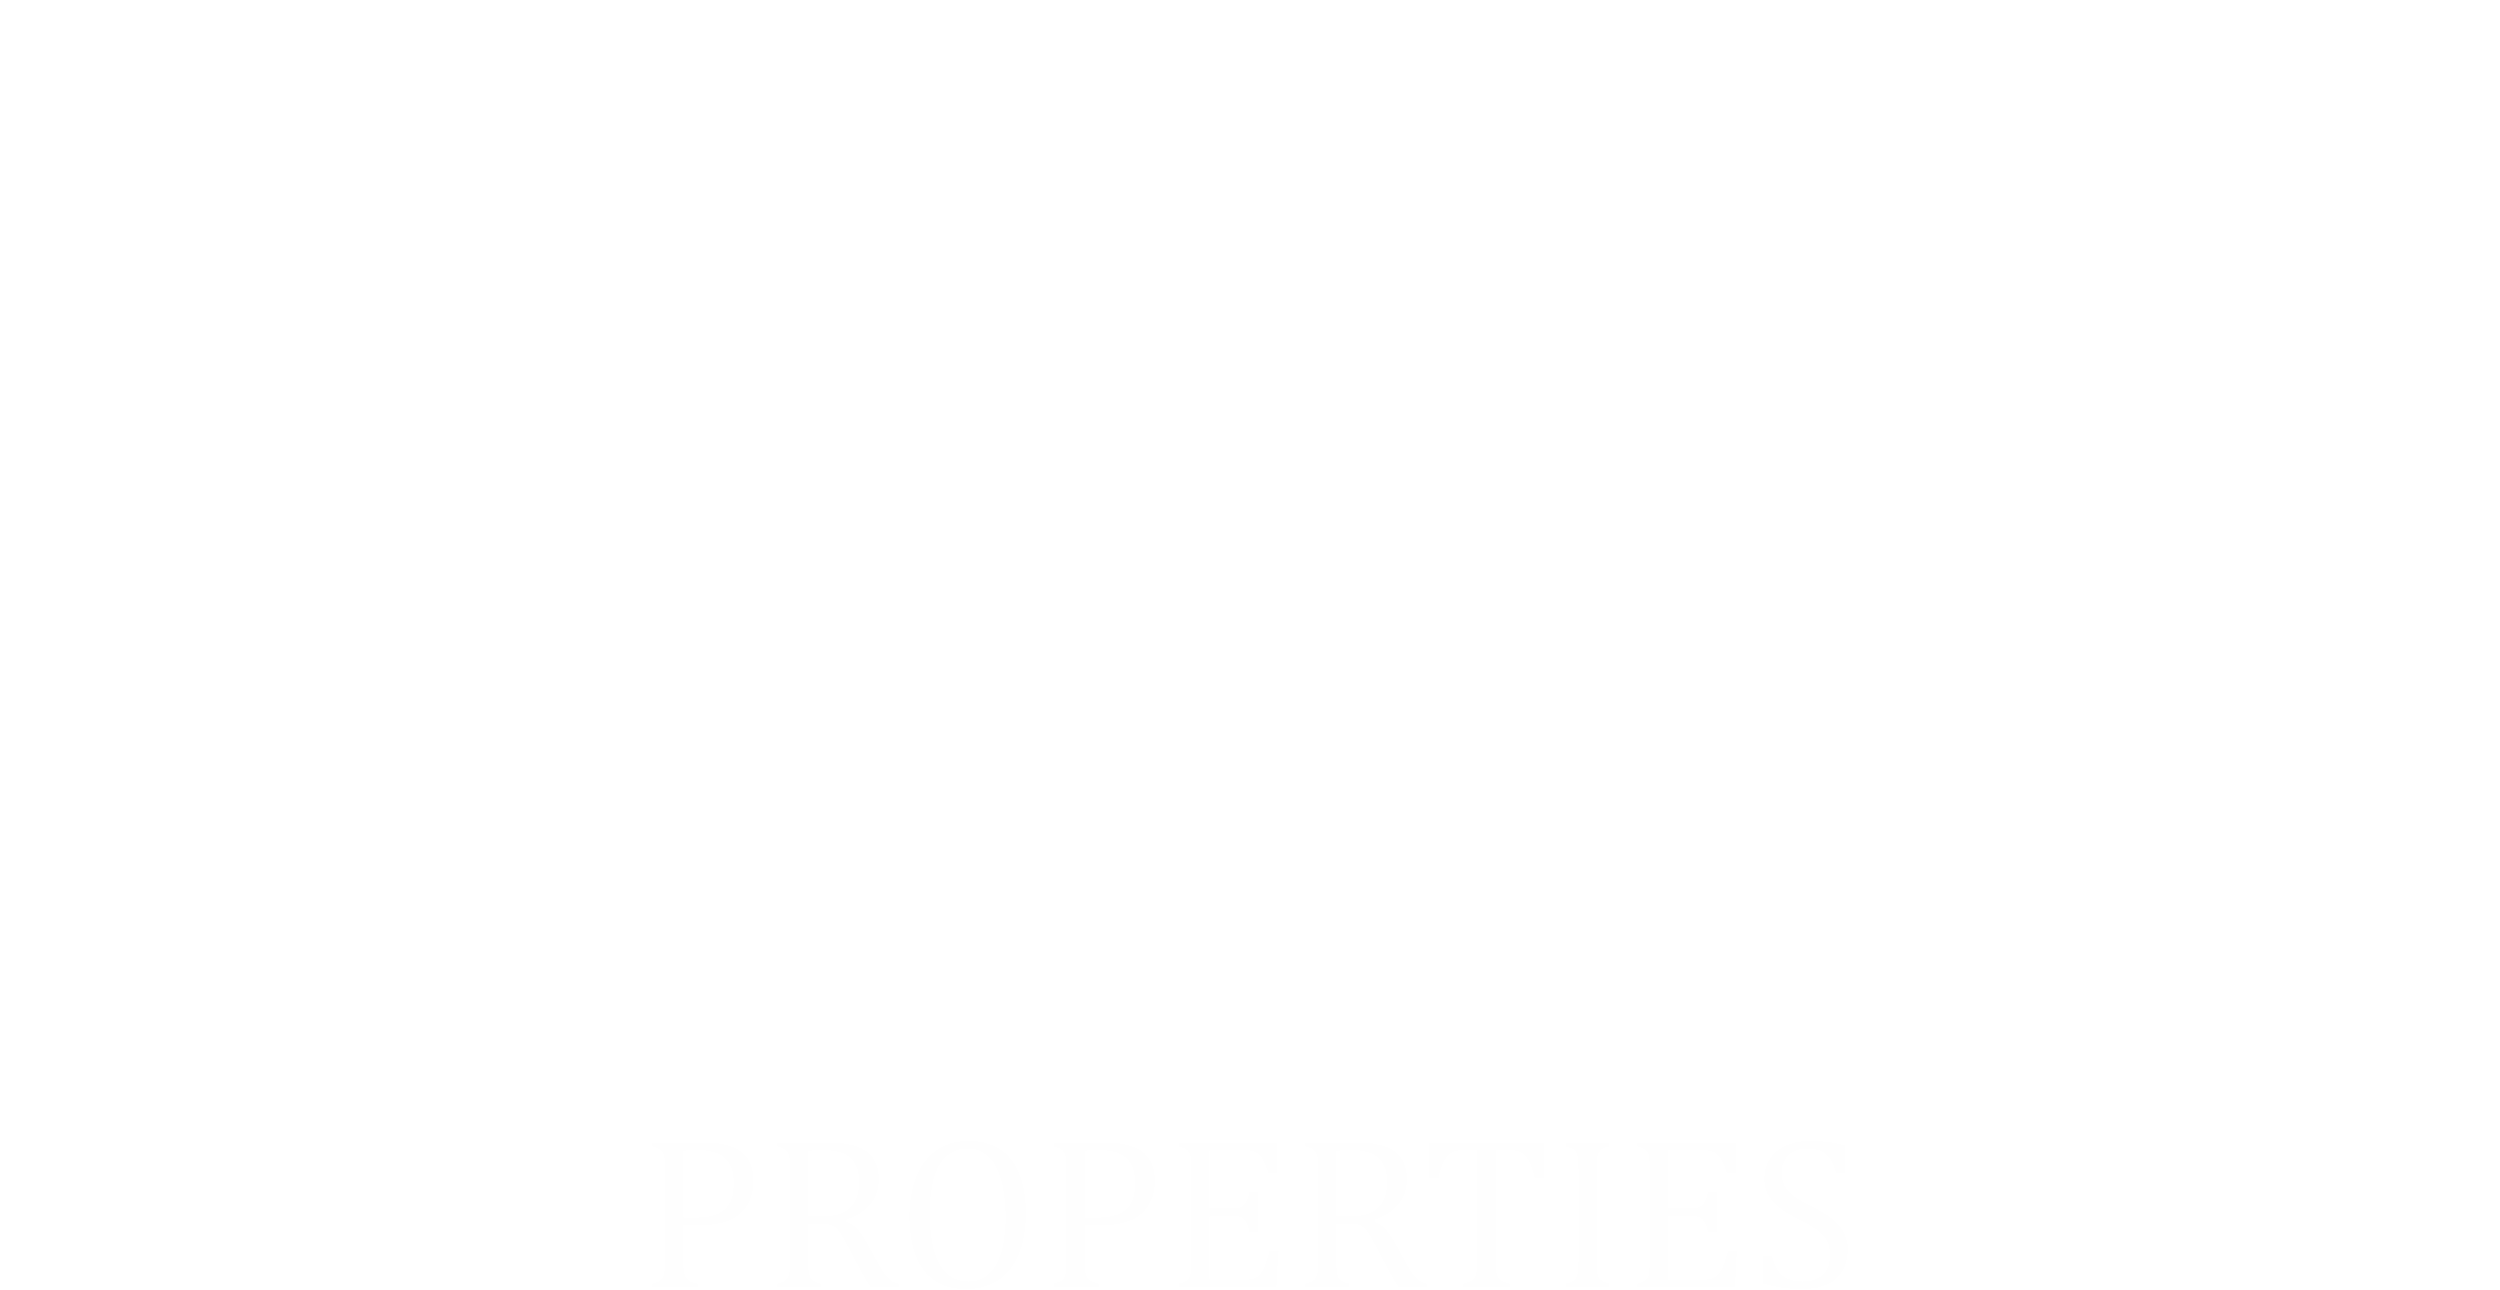 Valleyside Complete - Full White Logo - Blank Background.png